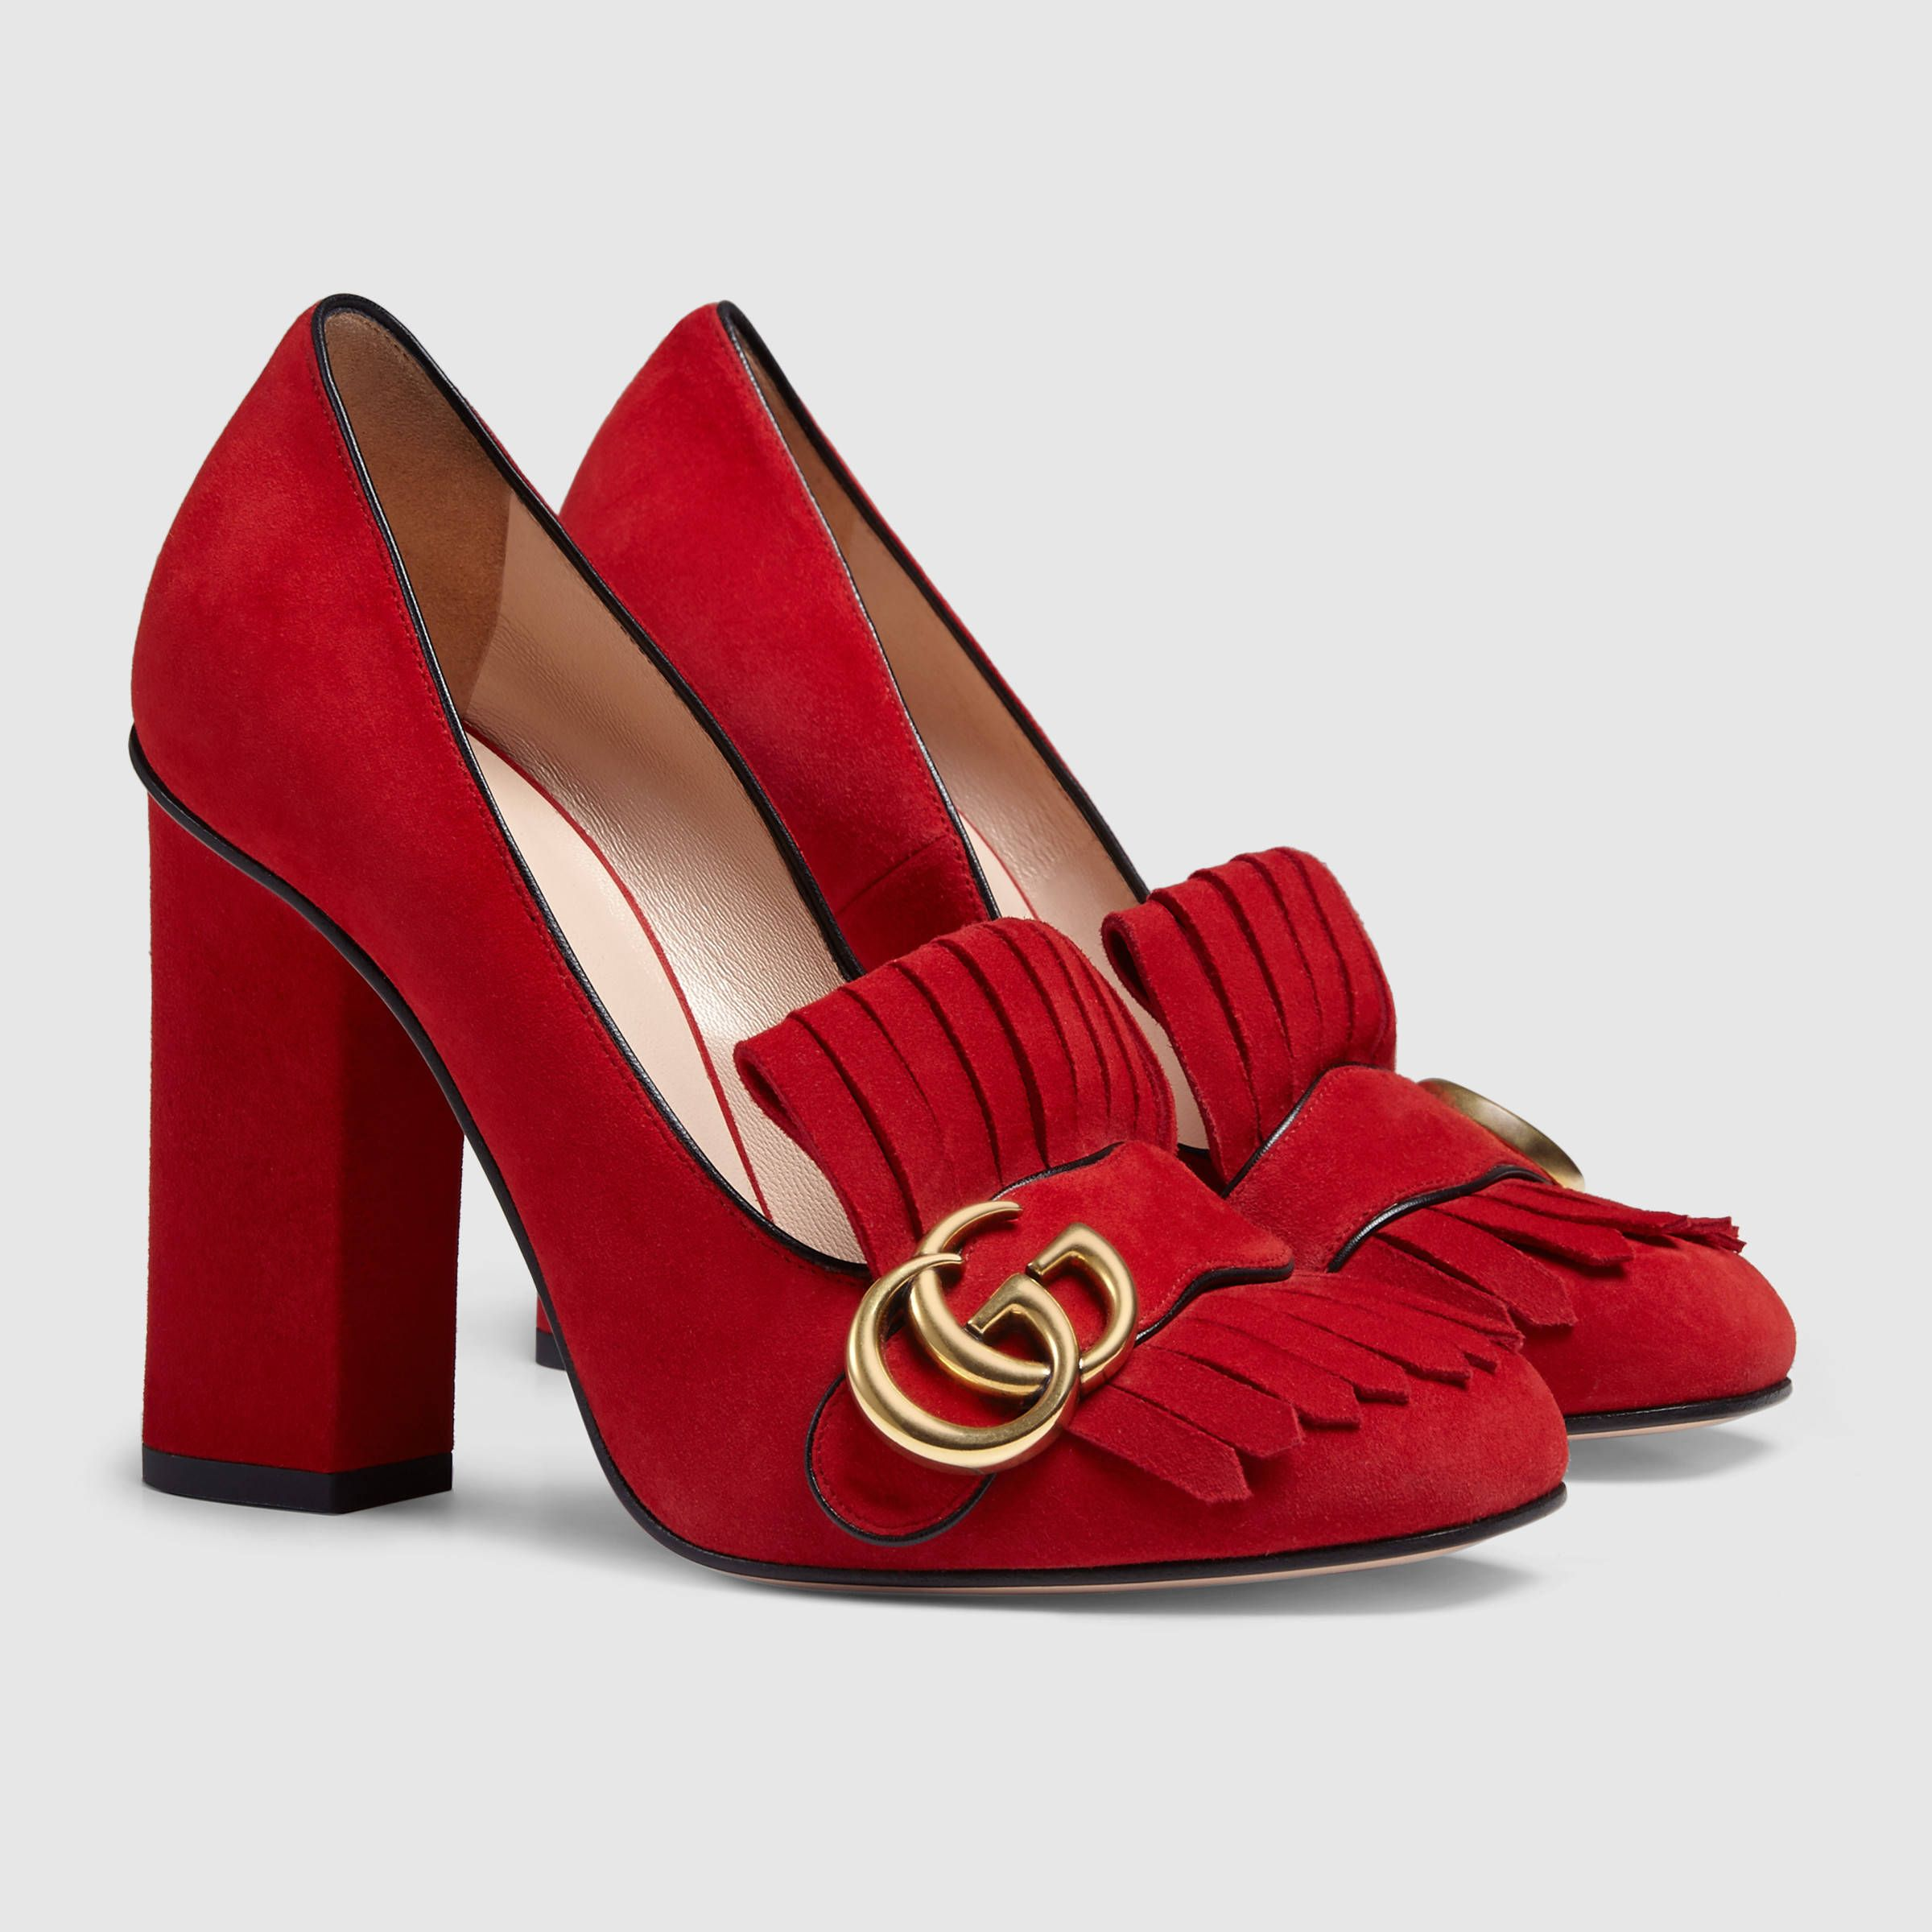 a89c06f13 Gucci Women - Gucci Red Suede pumps - $790.00 | ***GUCCI FASHION ...